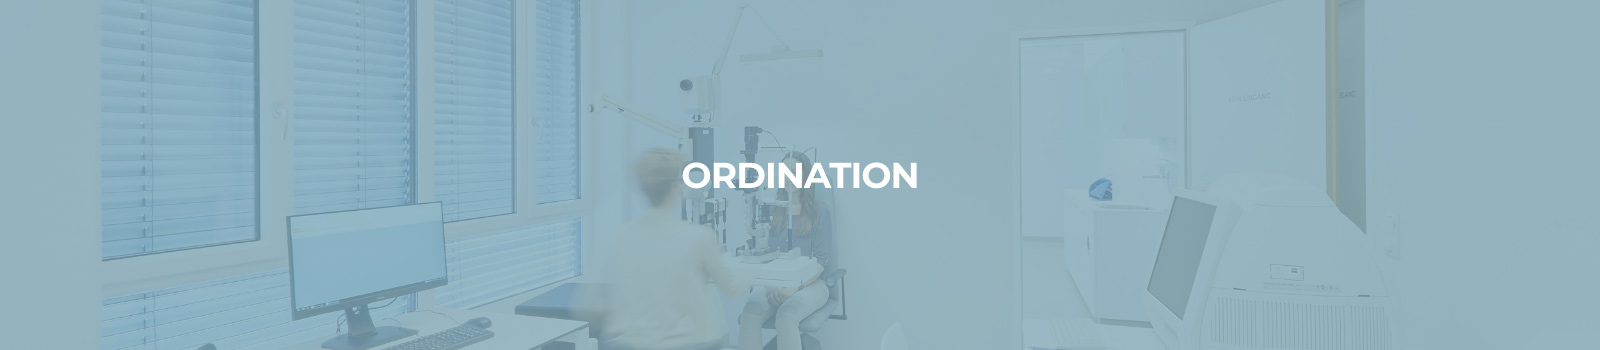 ordination-stand